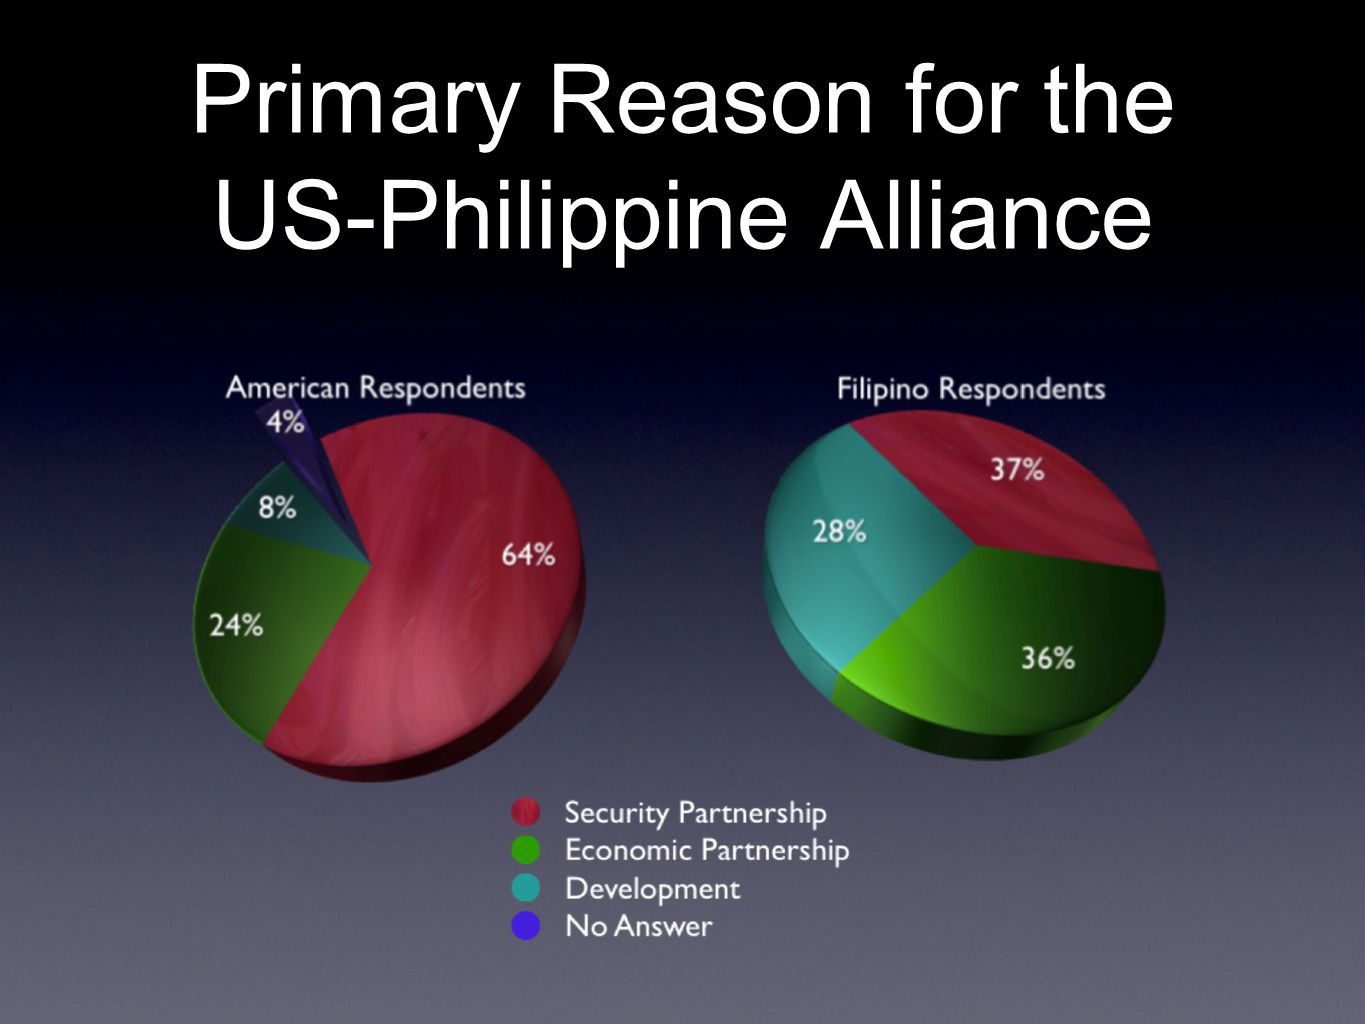 Primary Reason for the US-Philippine Alliance